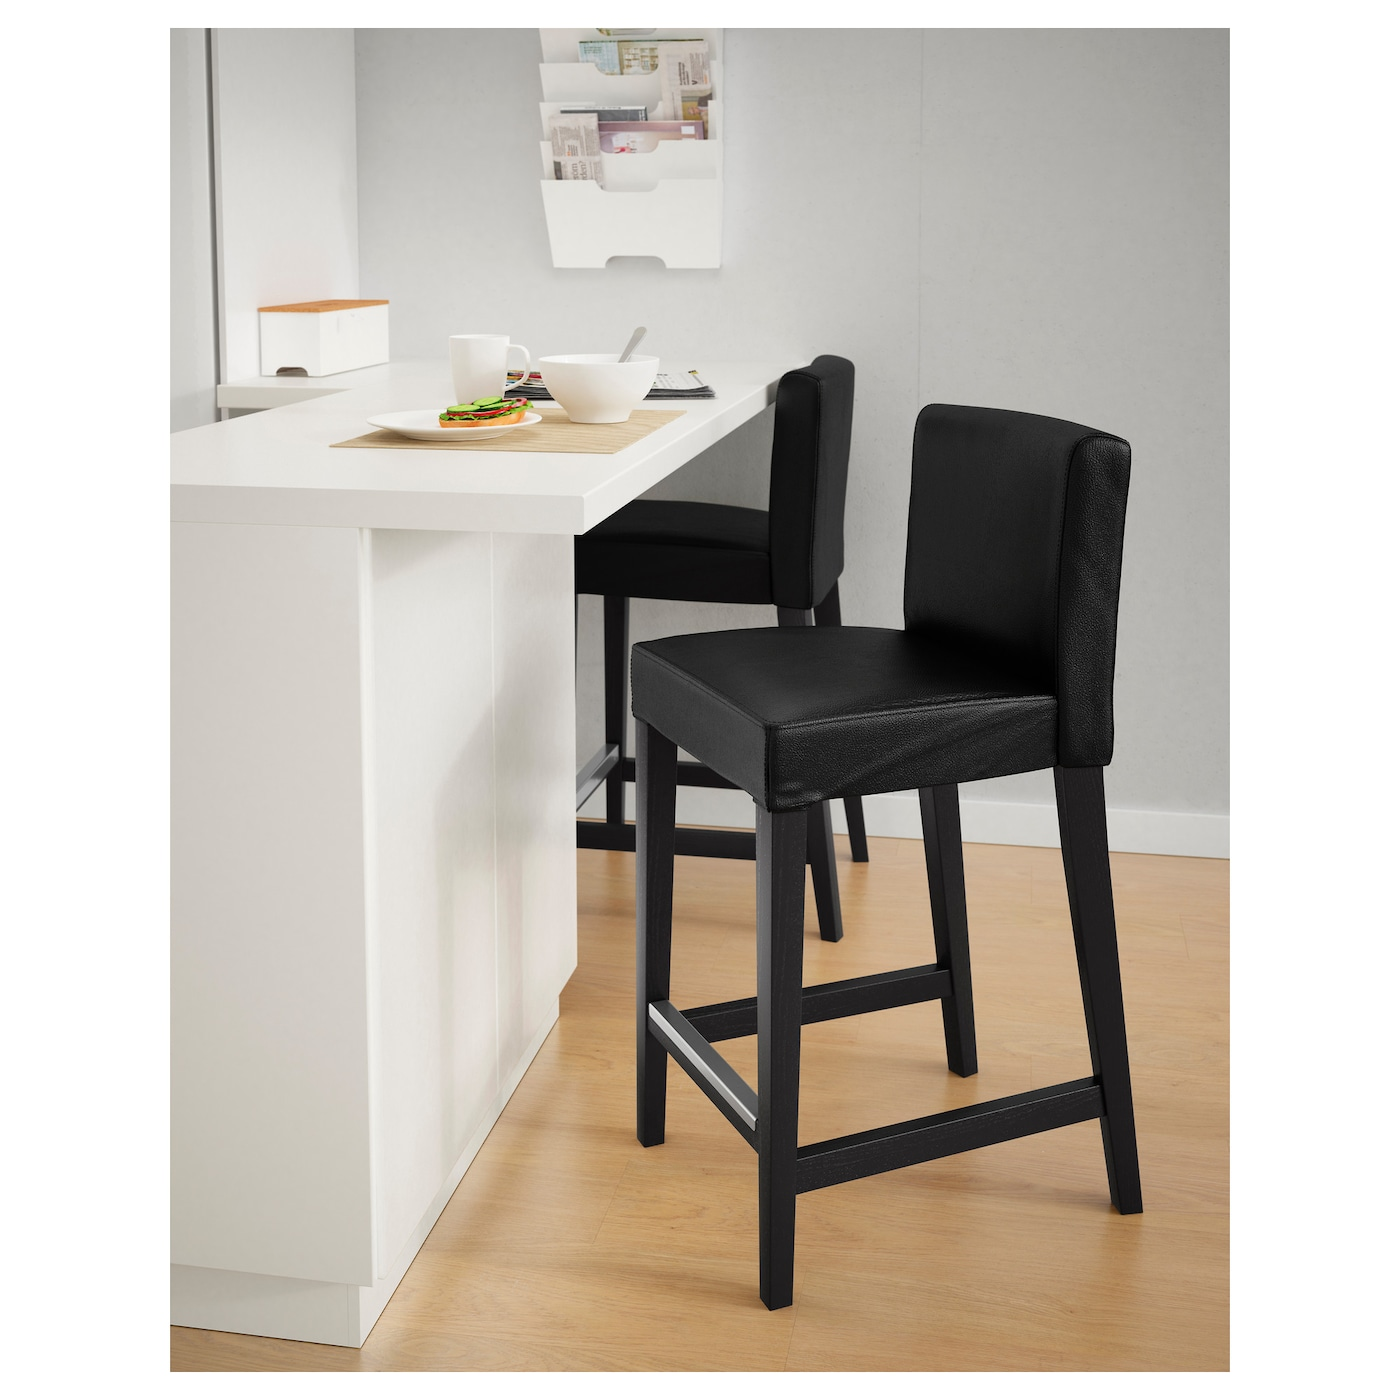 henriksdal tabouret de bar dossier brun noir glose noir 63 cm ikea. Black Bedroom Furniture Sets. Home Design Ideas